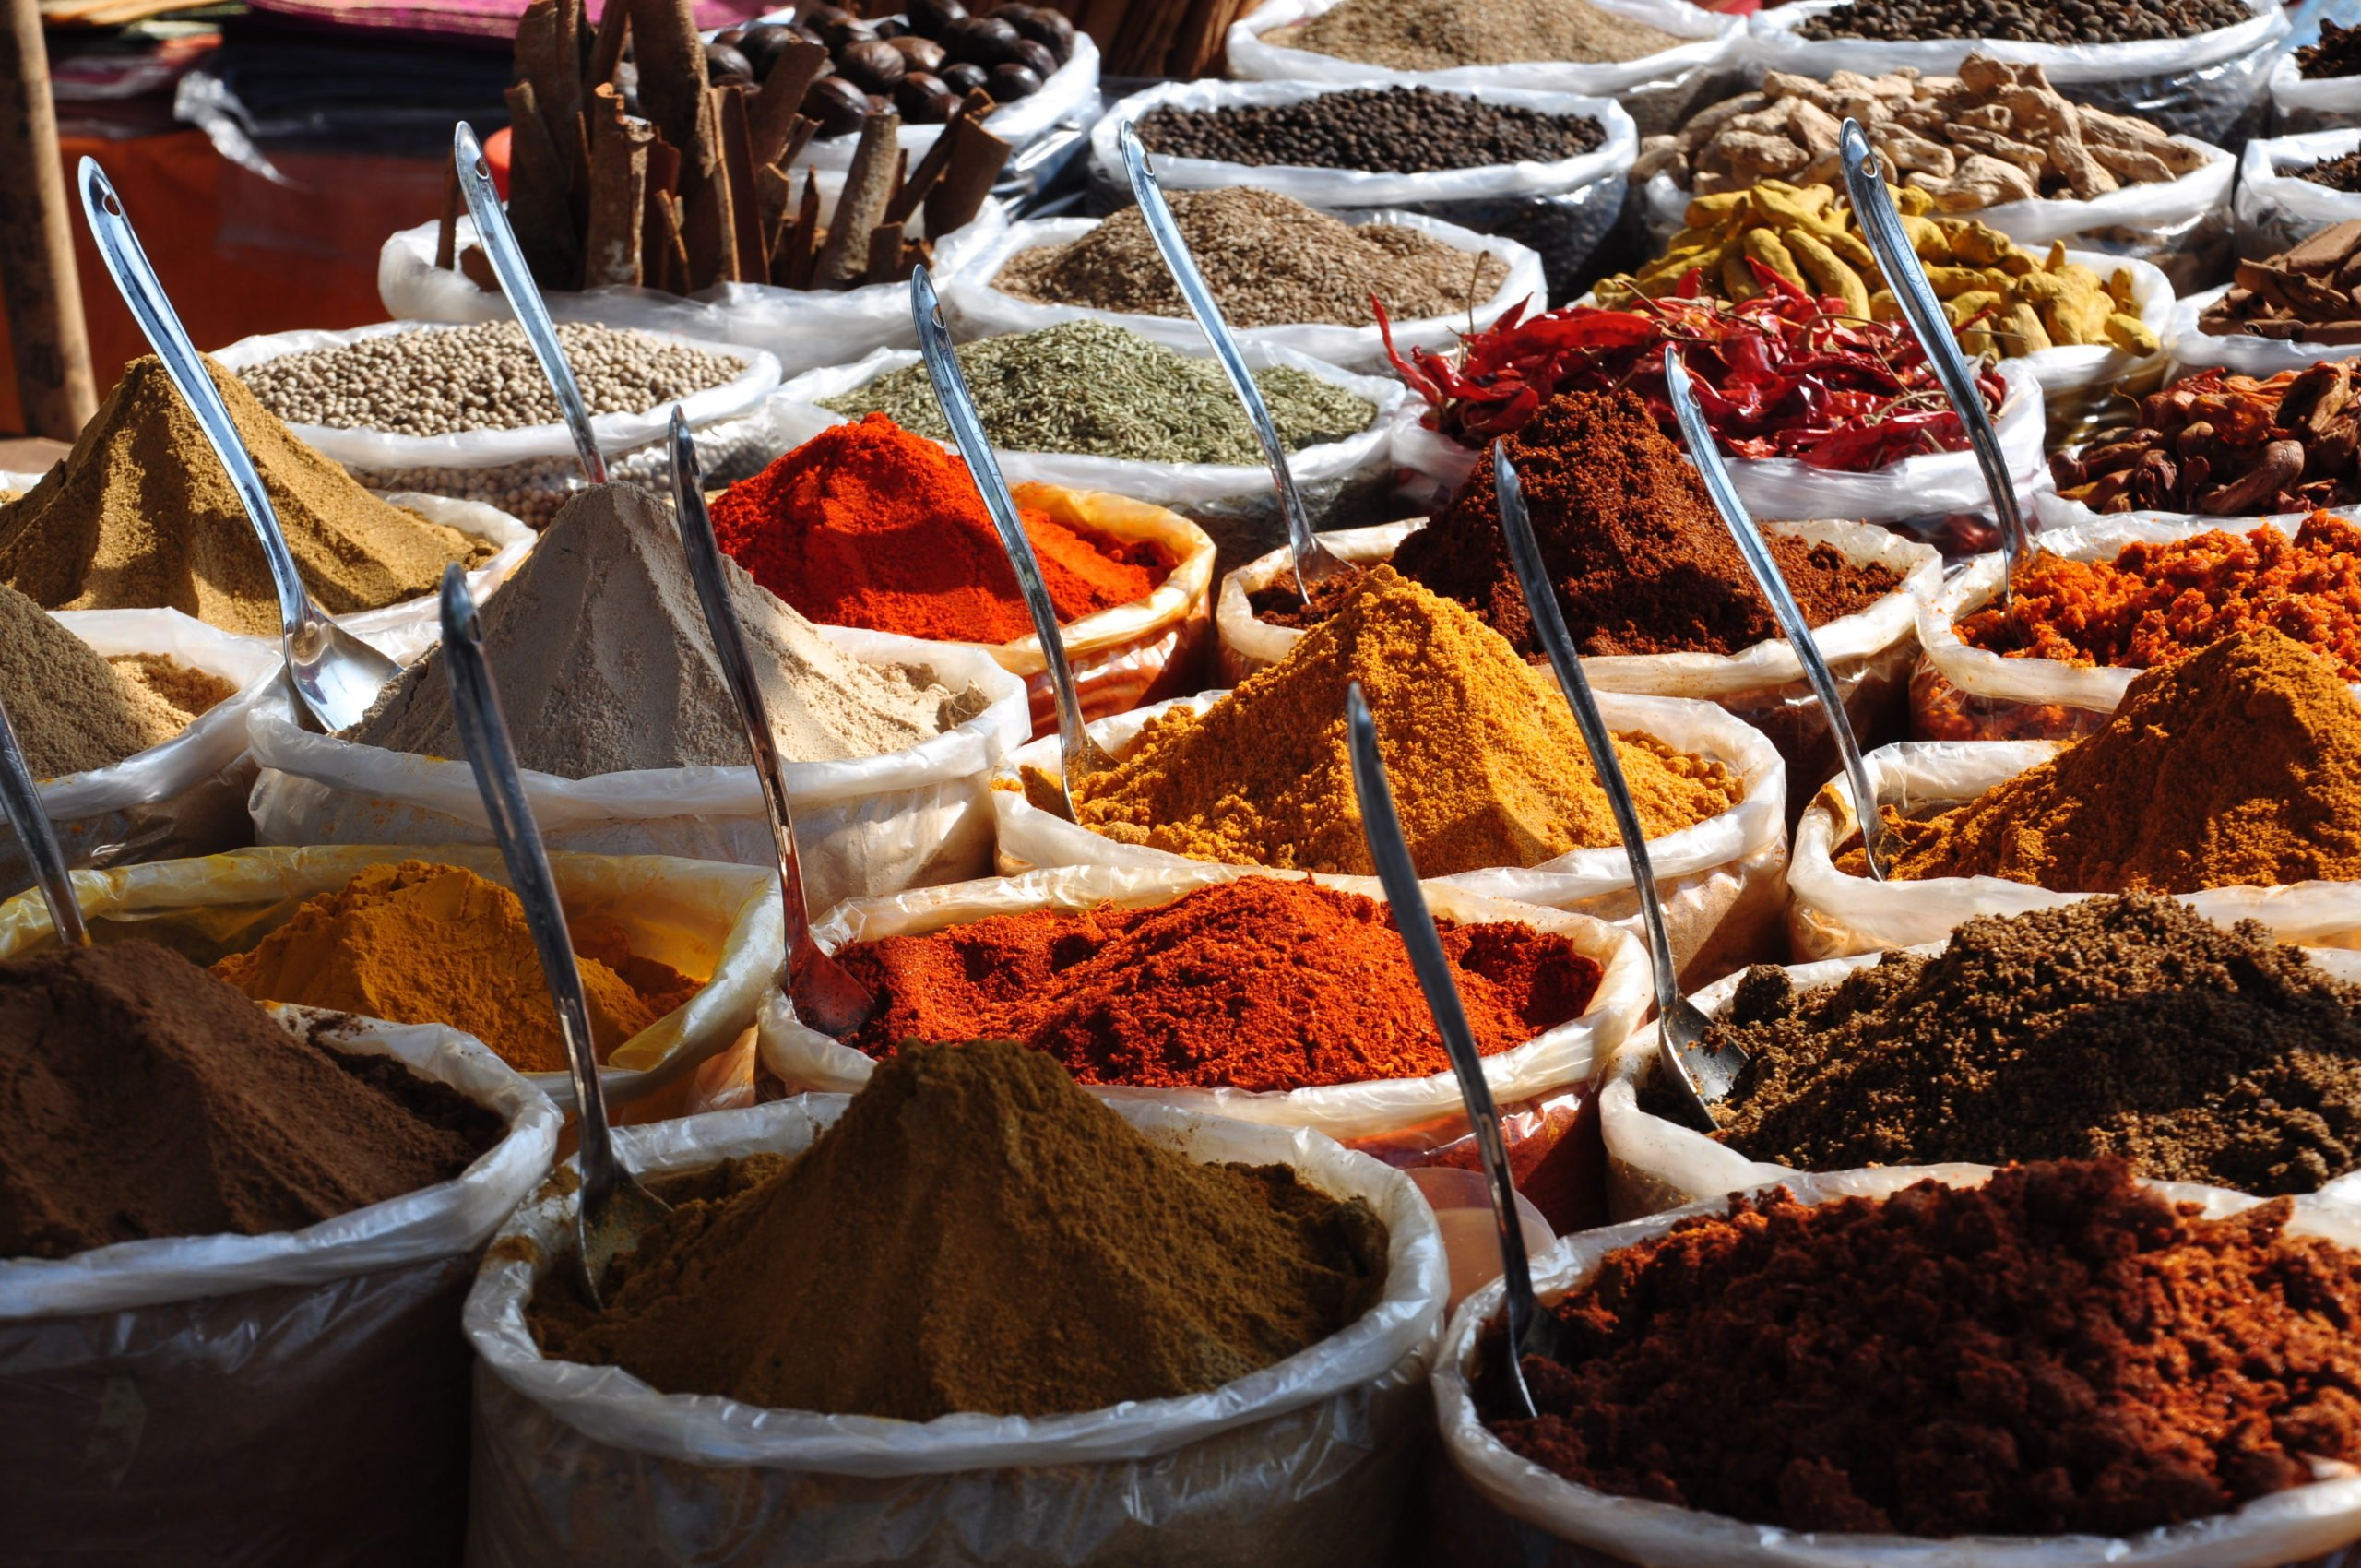 Explore The Local Market On The South India